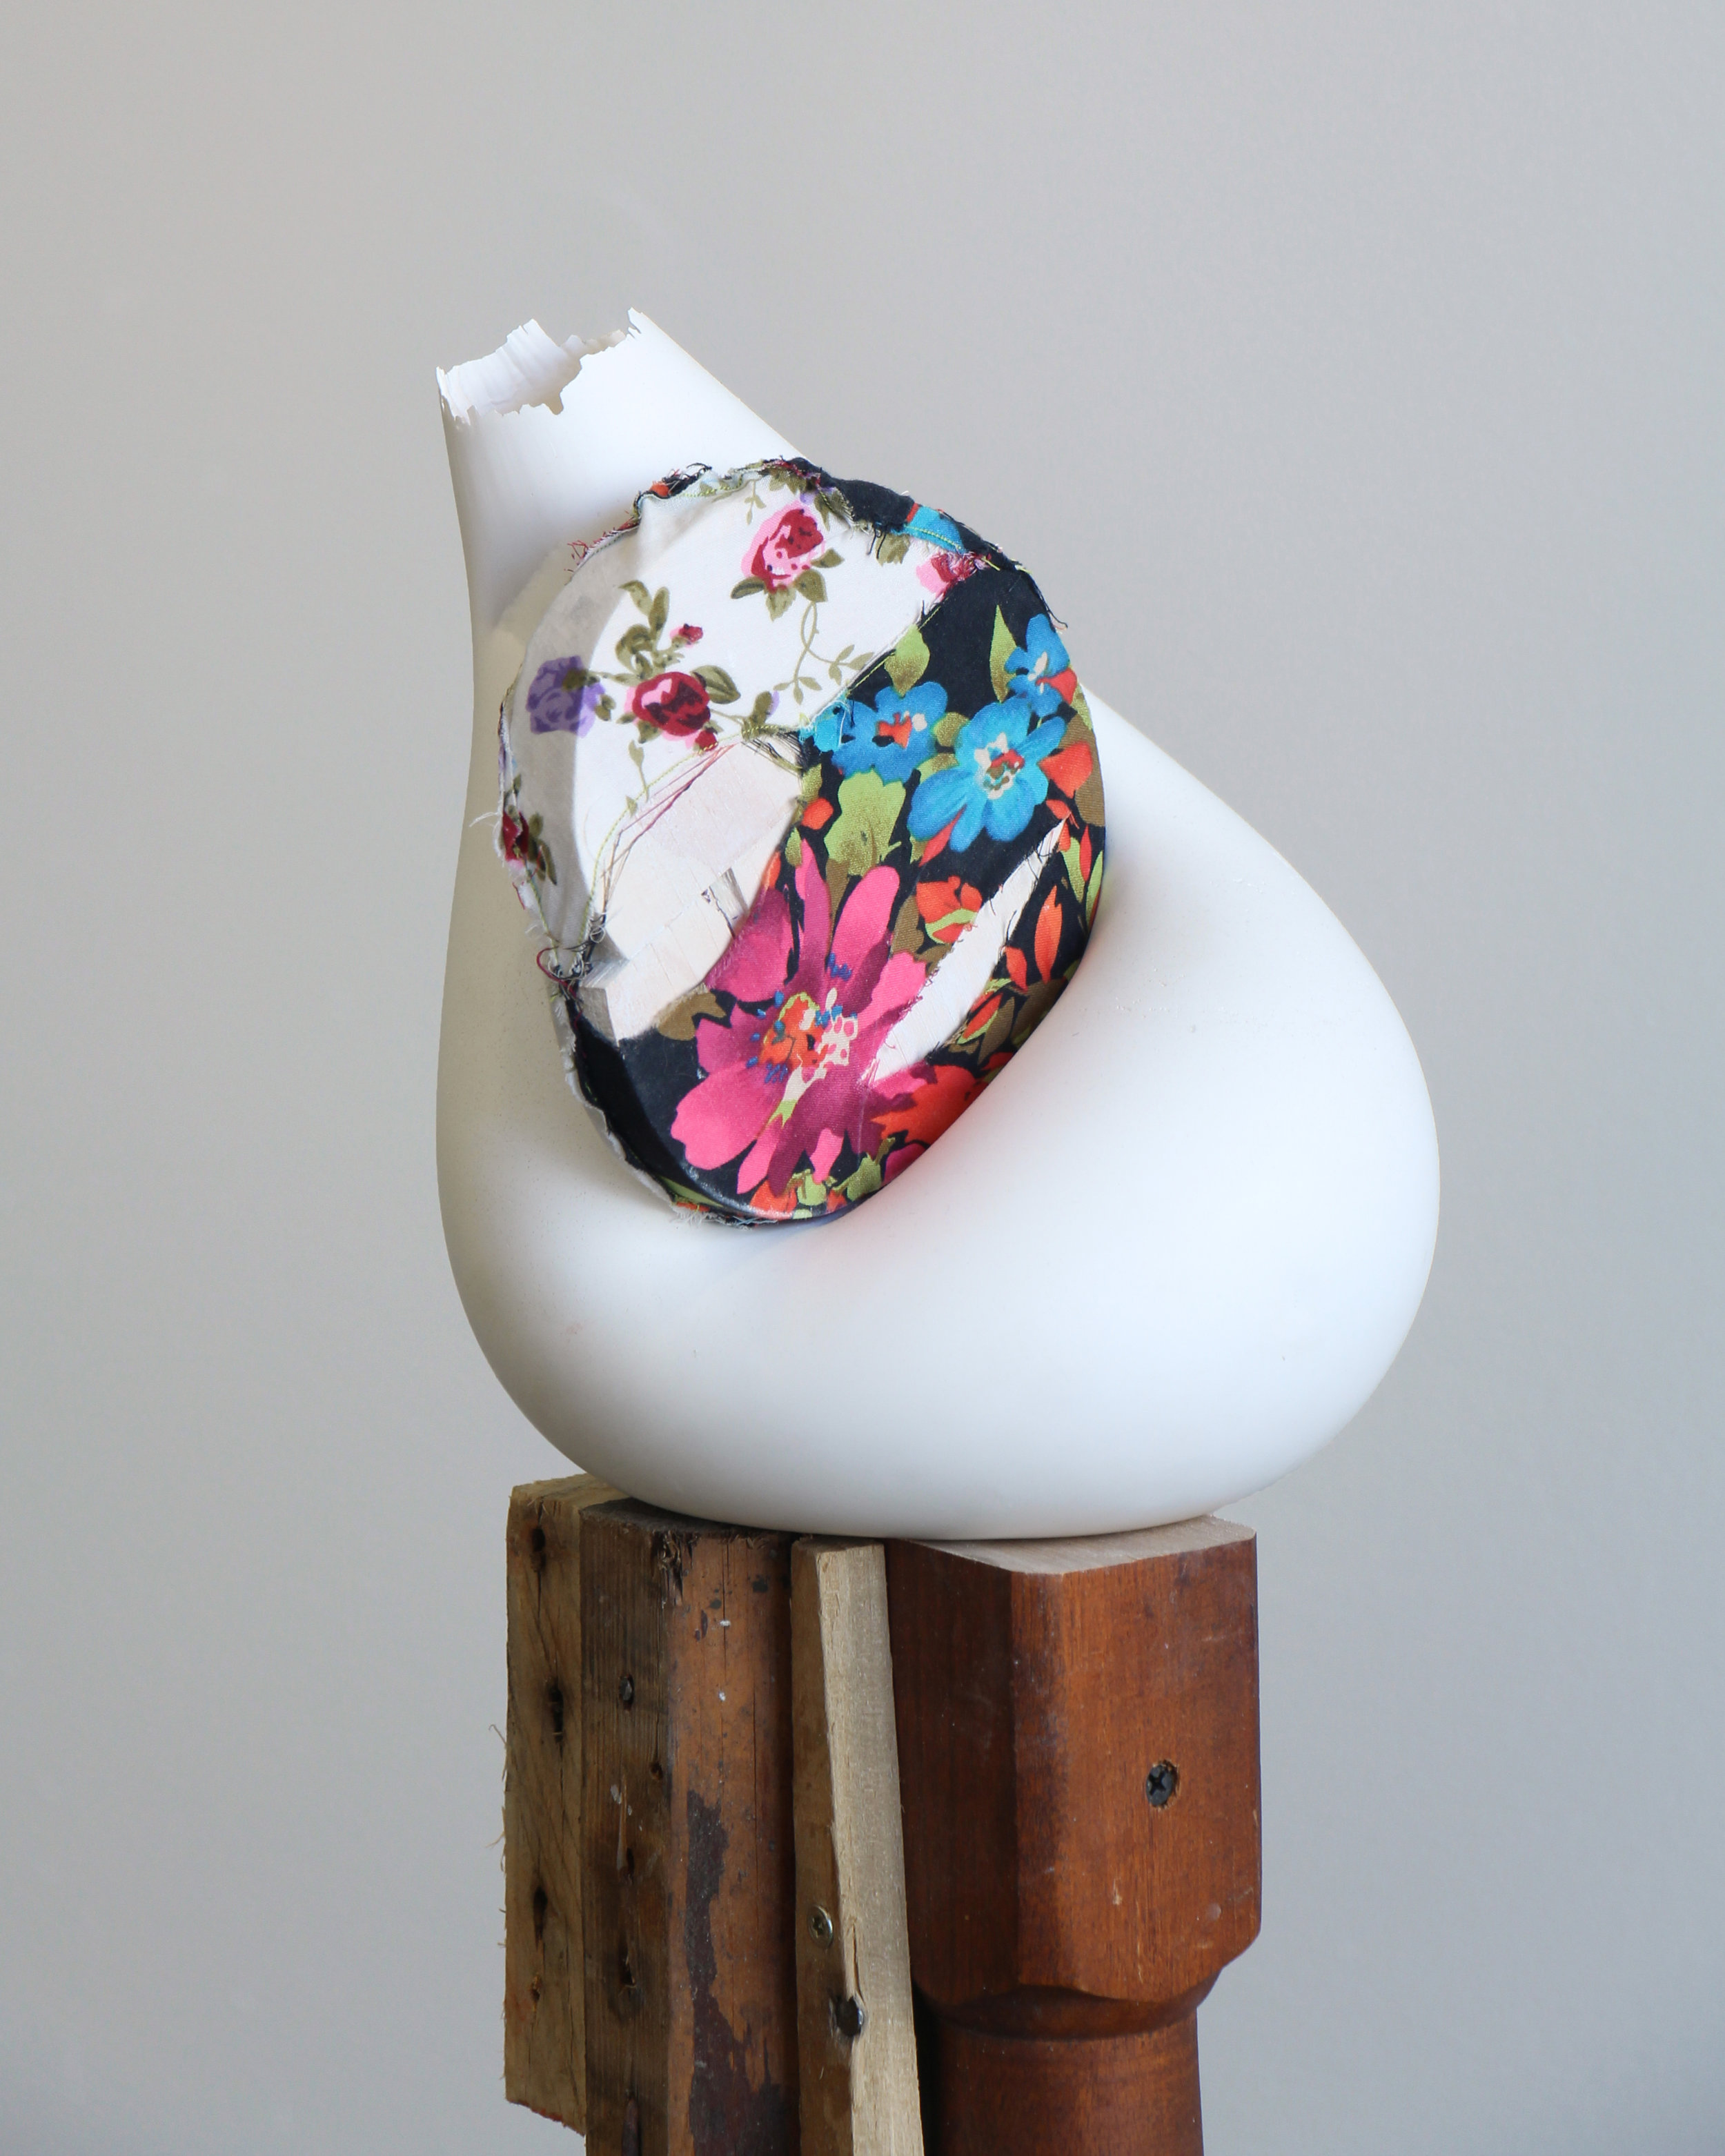 """And as Honeysuckle Is Sweet so Is This Flower Salt, 2016 plaster, fabric, wood 8 x 7 x 6"""""""